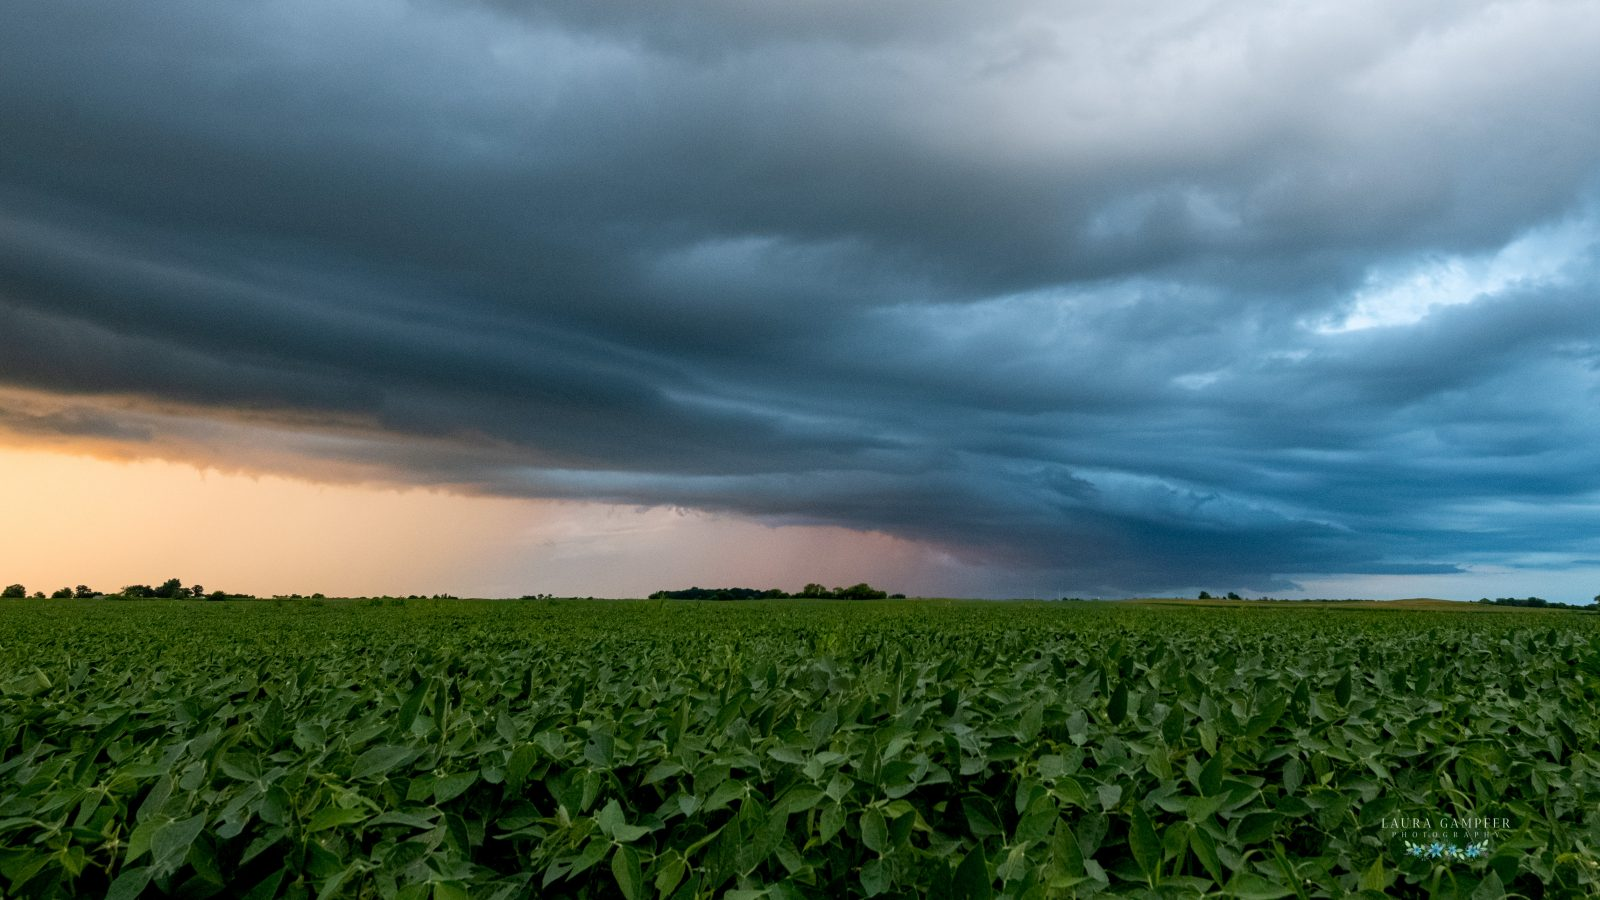 Stormy Summer Sky Over Illinois Soybeans